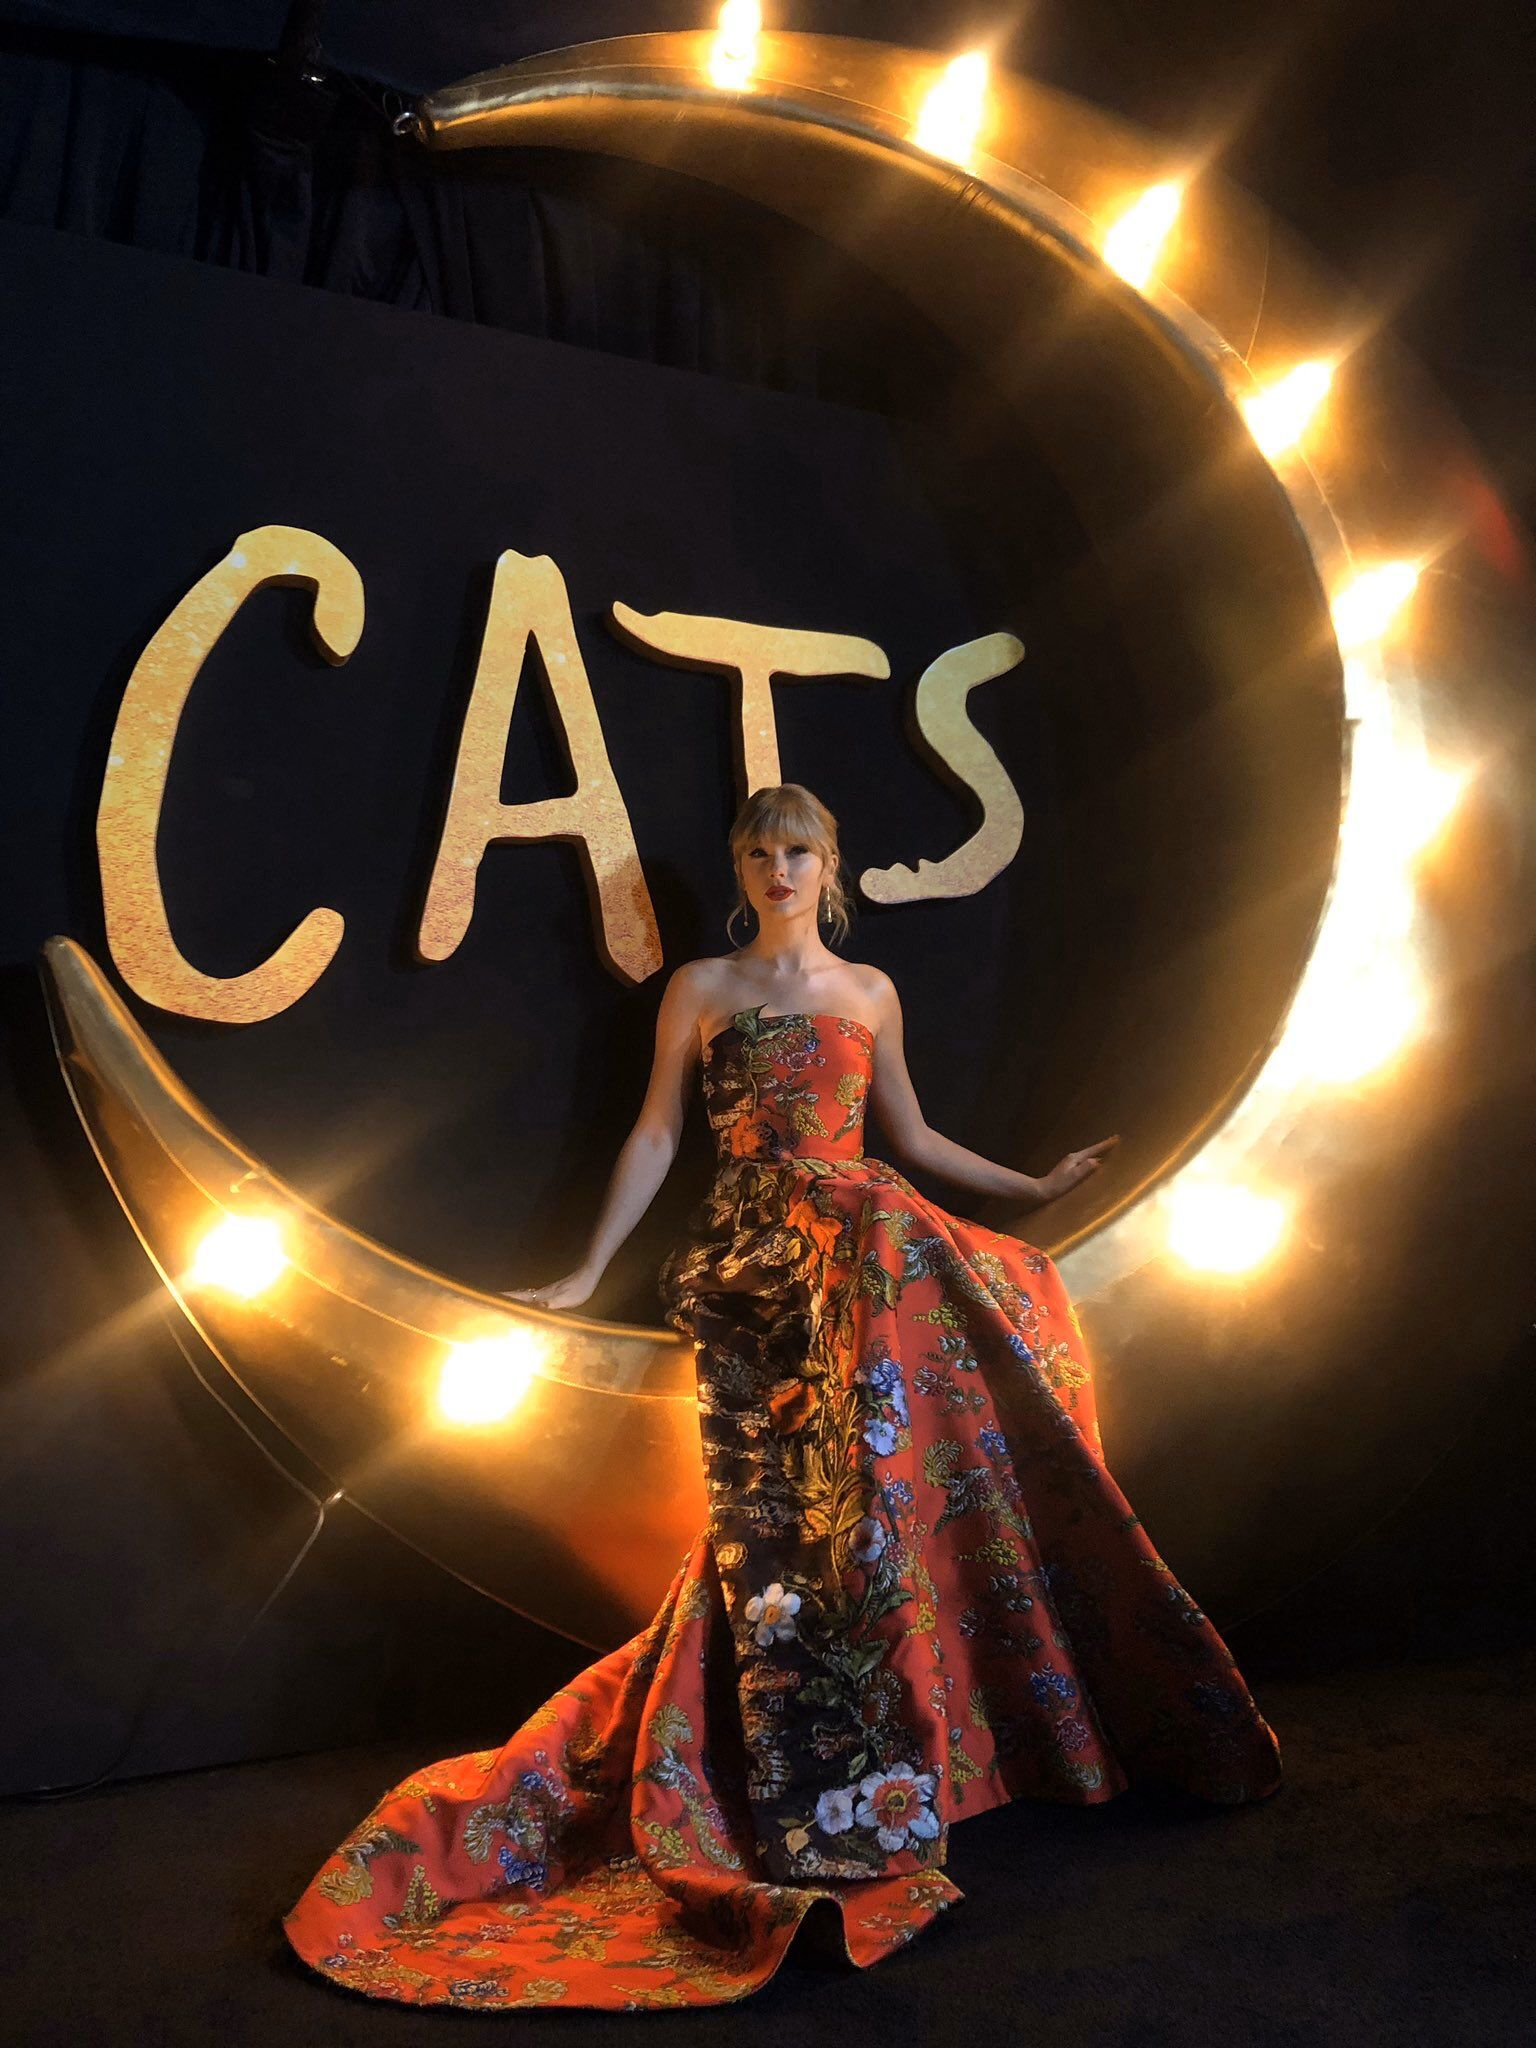 Taylor Swift News on in 2020 Taylor swift cat, Taylor